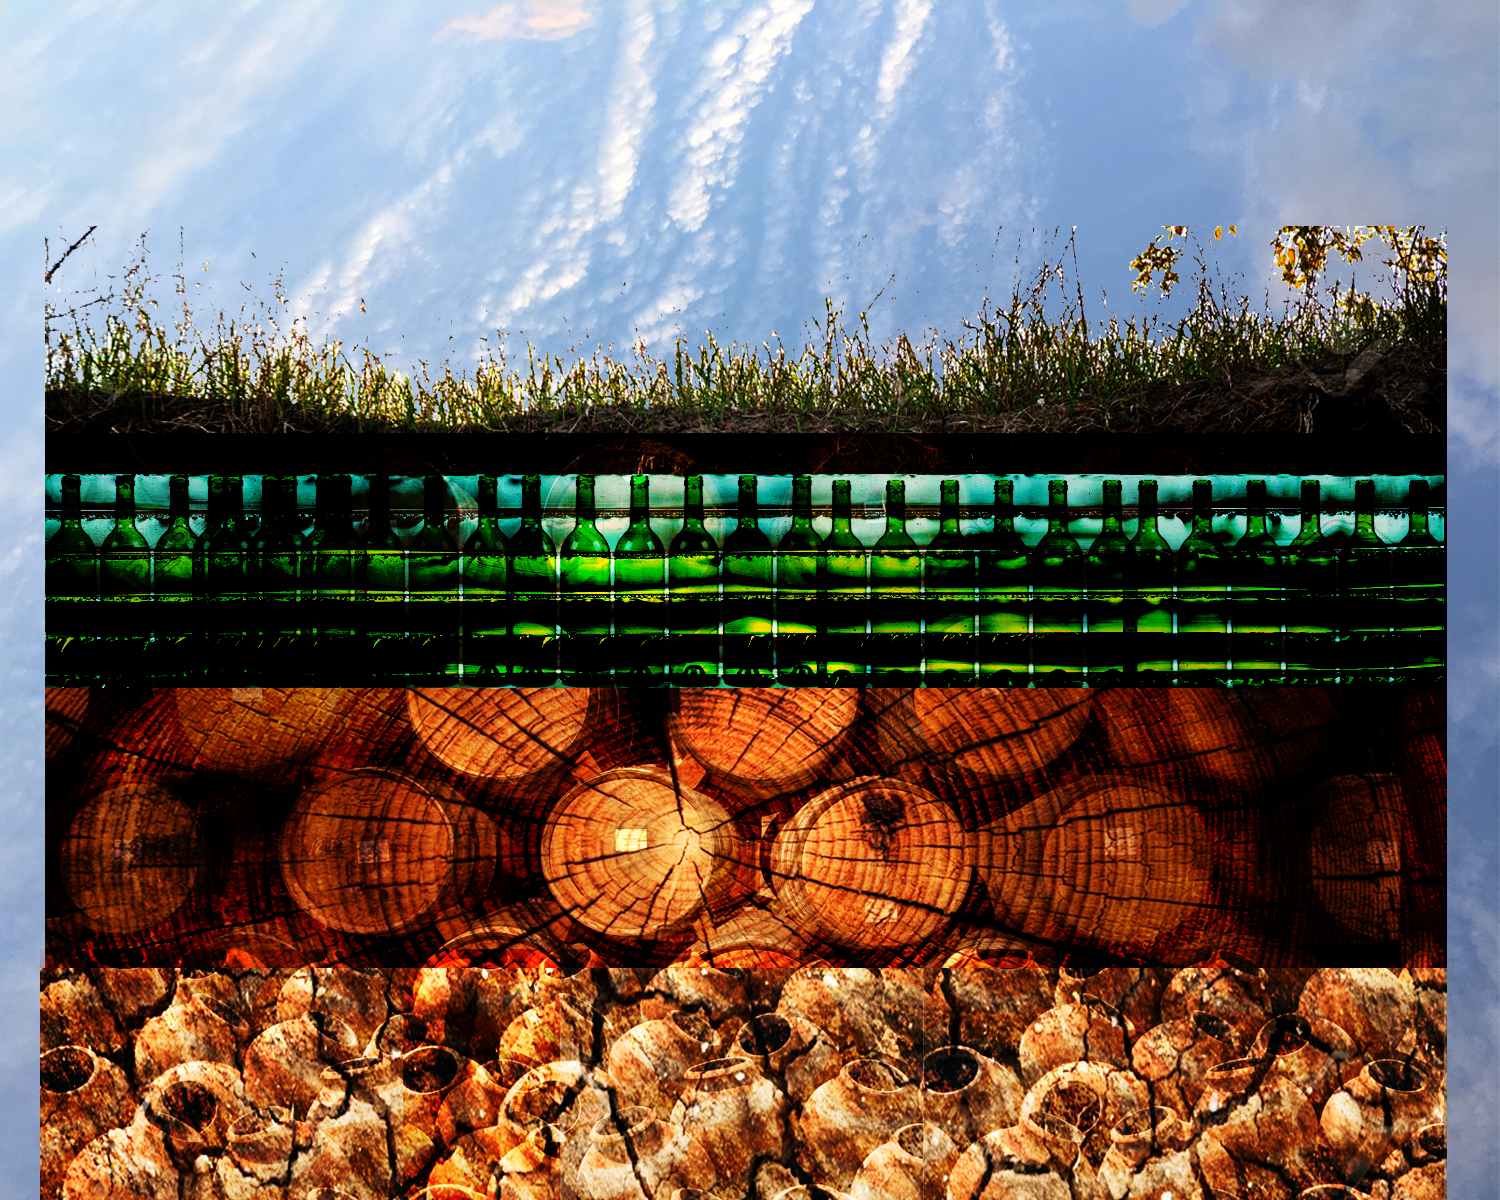 MATERIALS OF THE EARTH: - CLAY, WOOD, GLASS AND WINE VESSELS